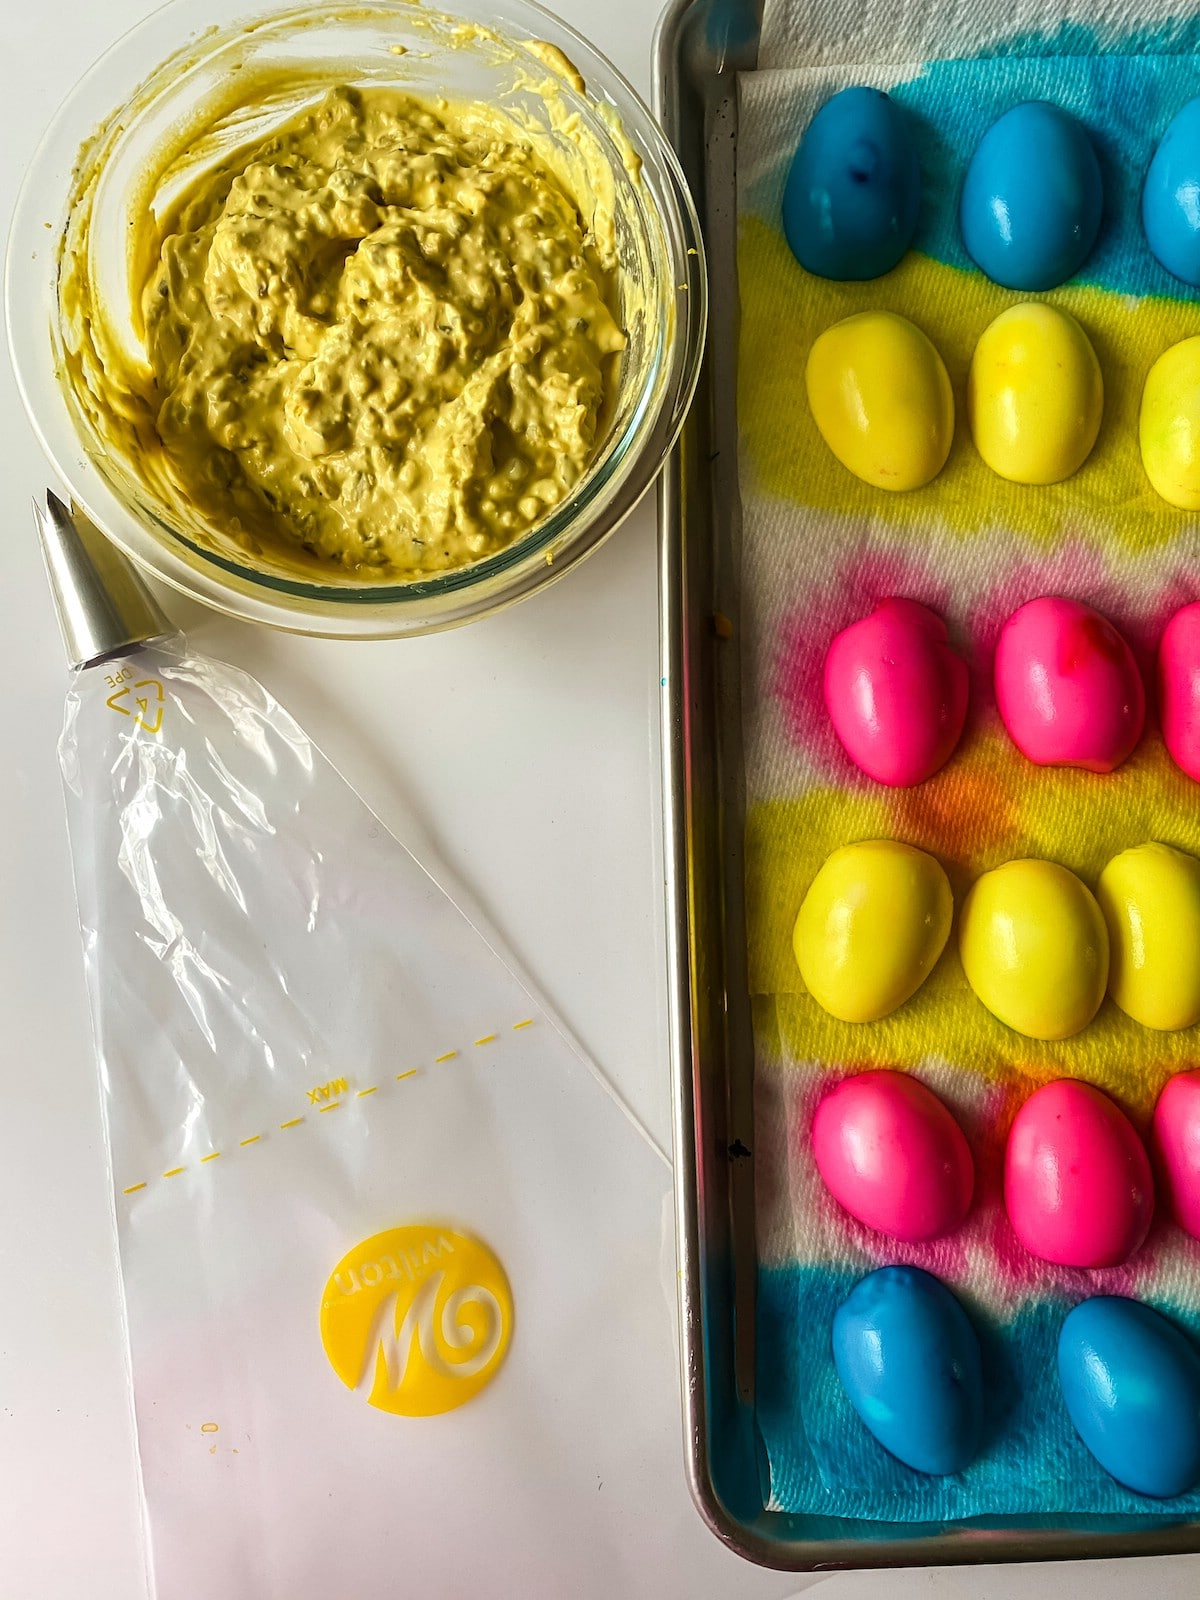 Sheet pan with dyed eggs beside bowl of deviled egg filling